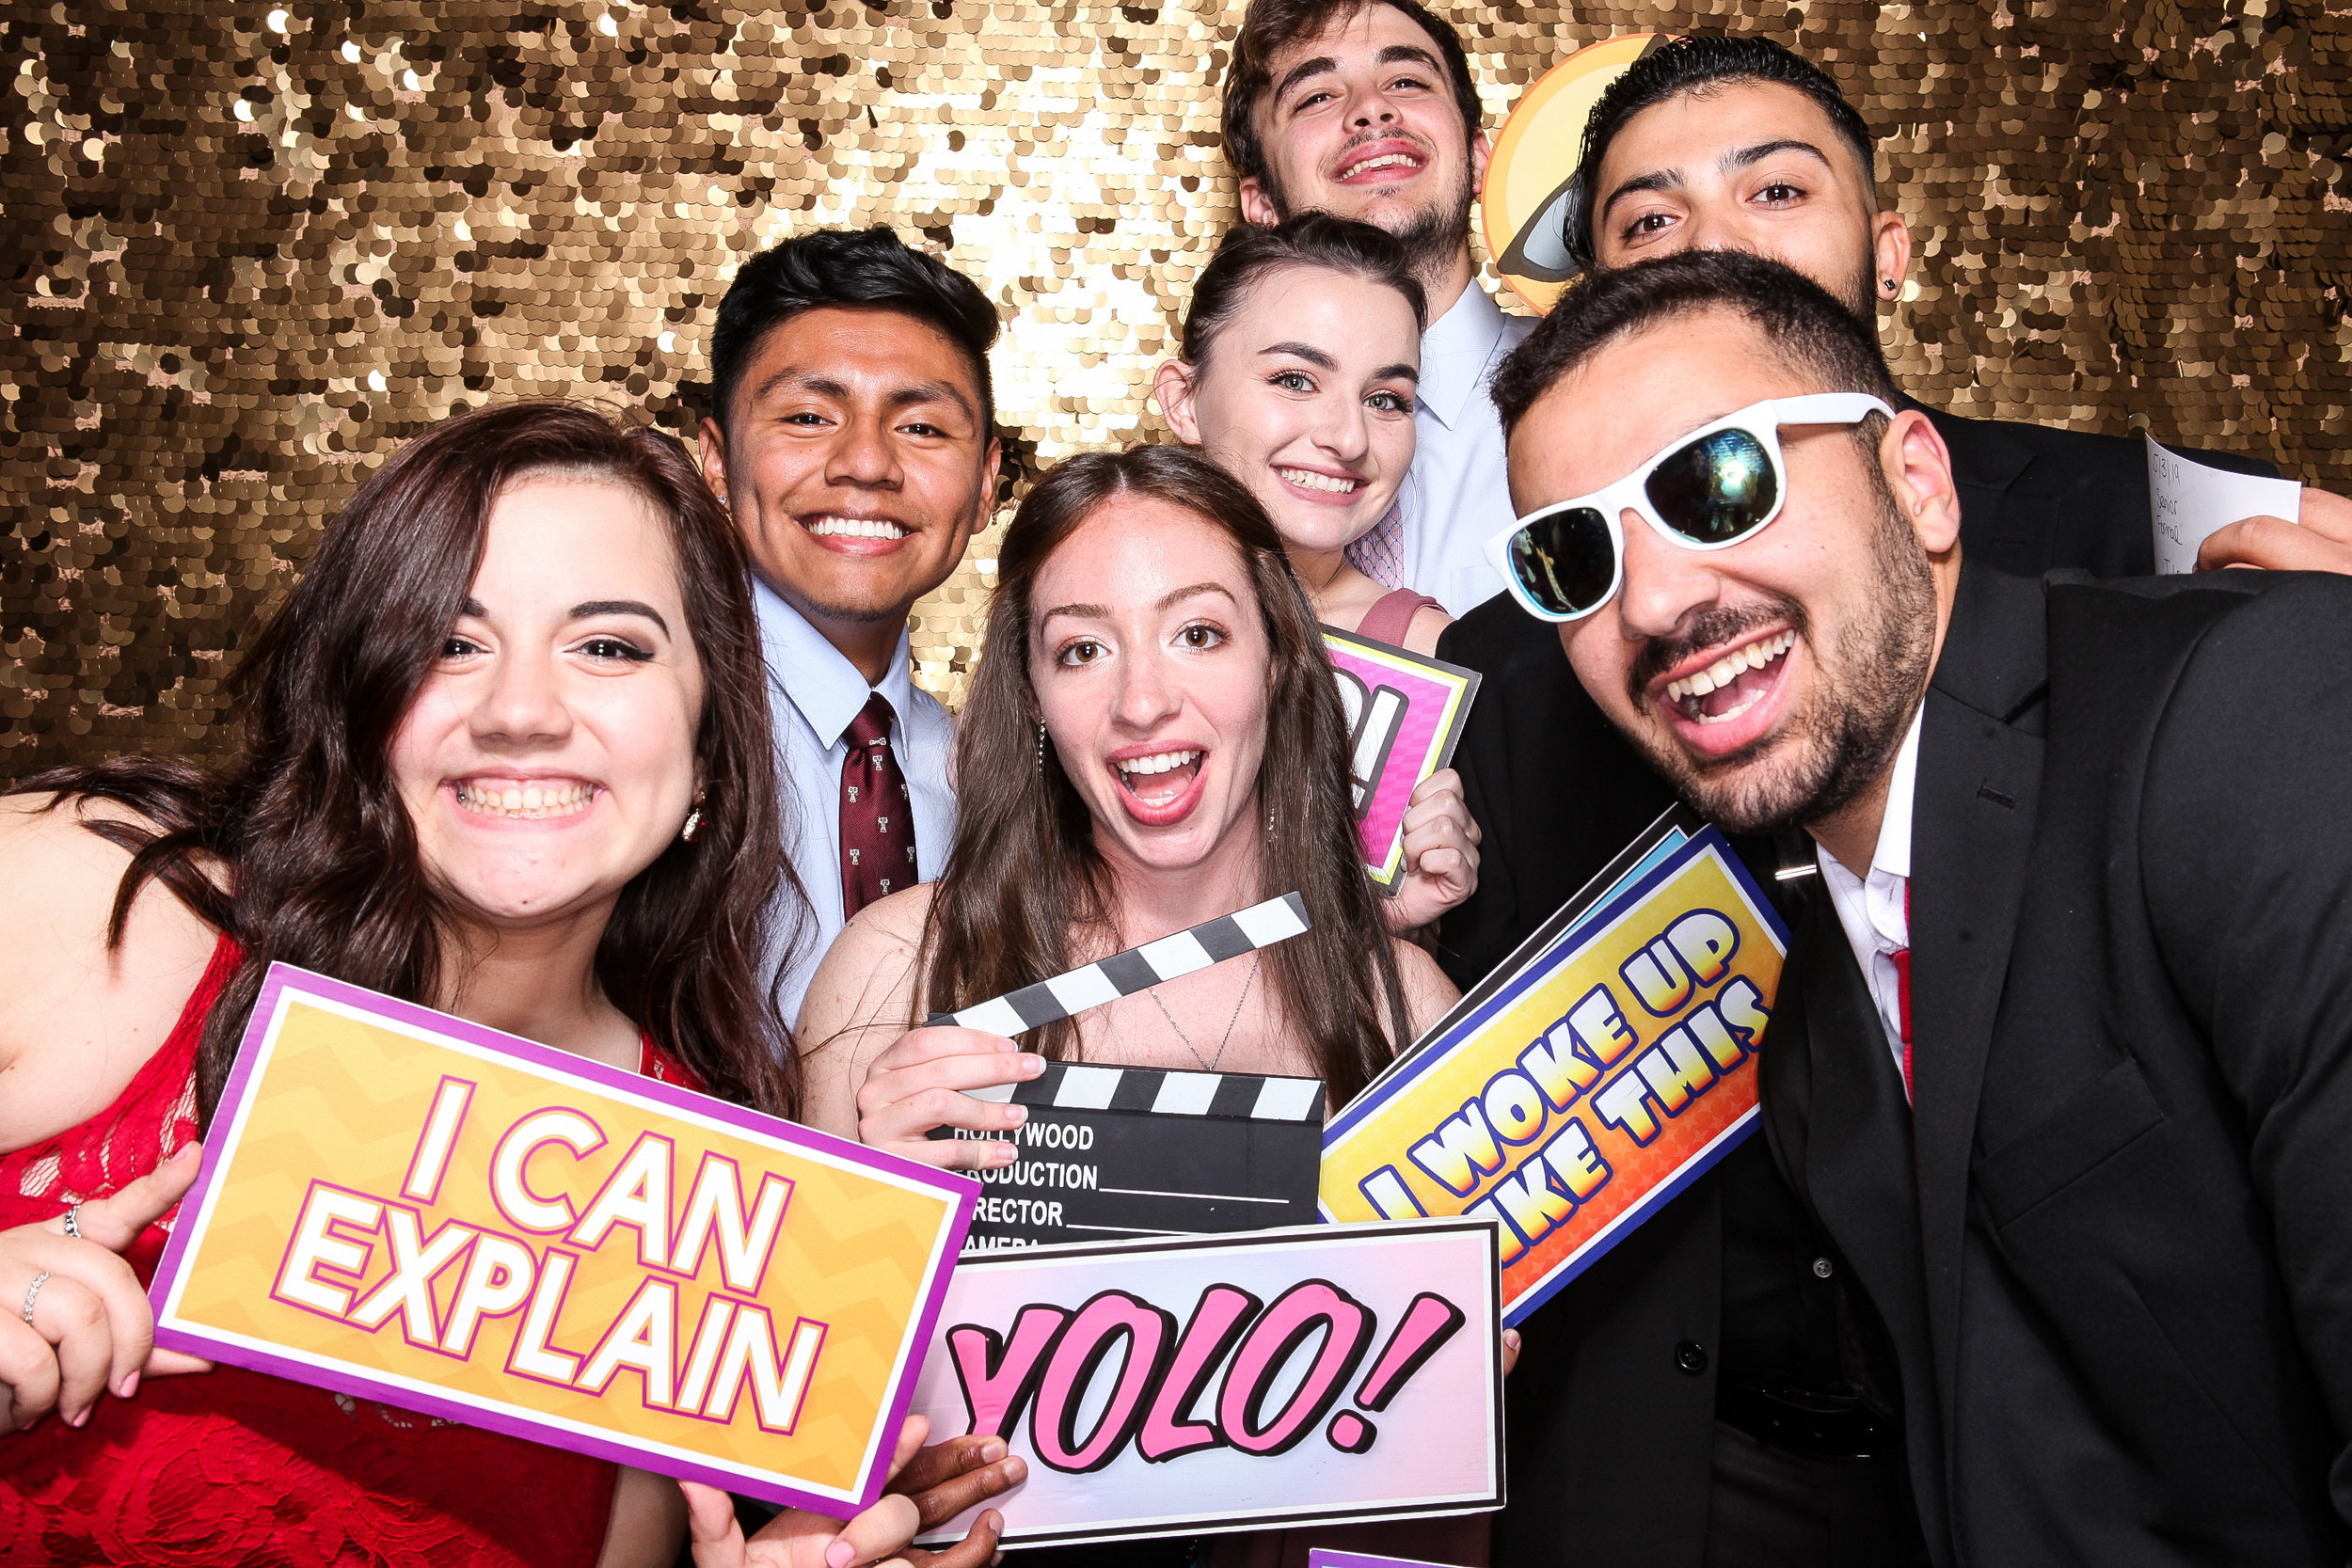 20190503_Adelphi_Senior_Formal-279.jpg